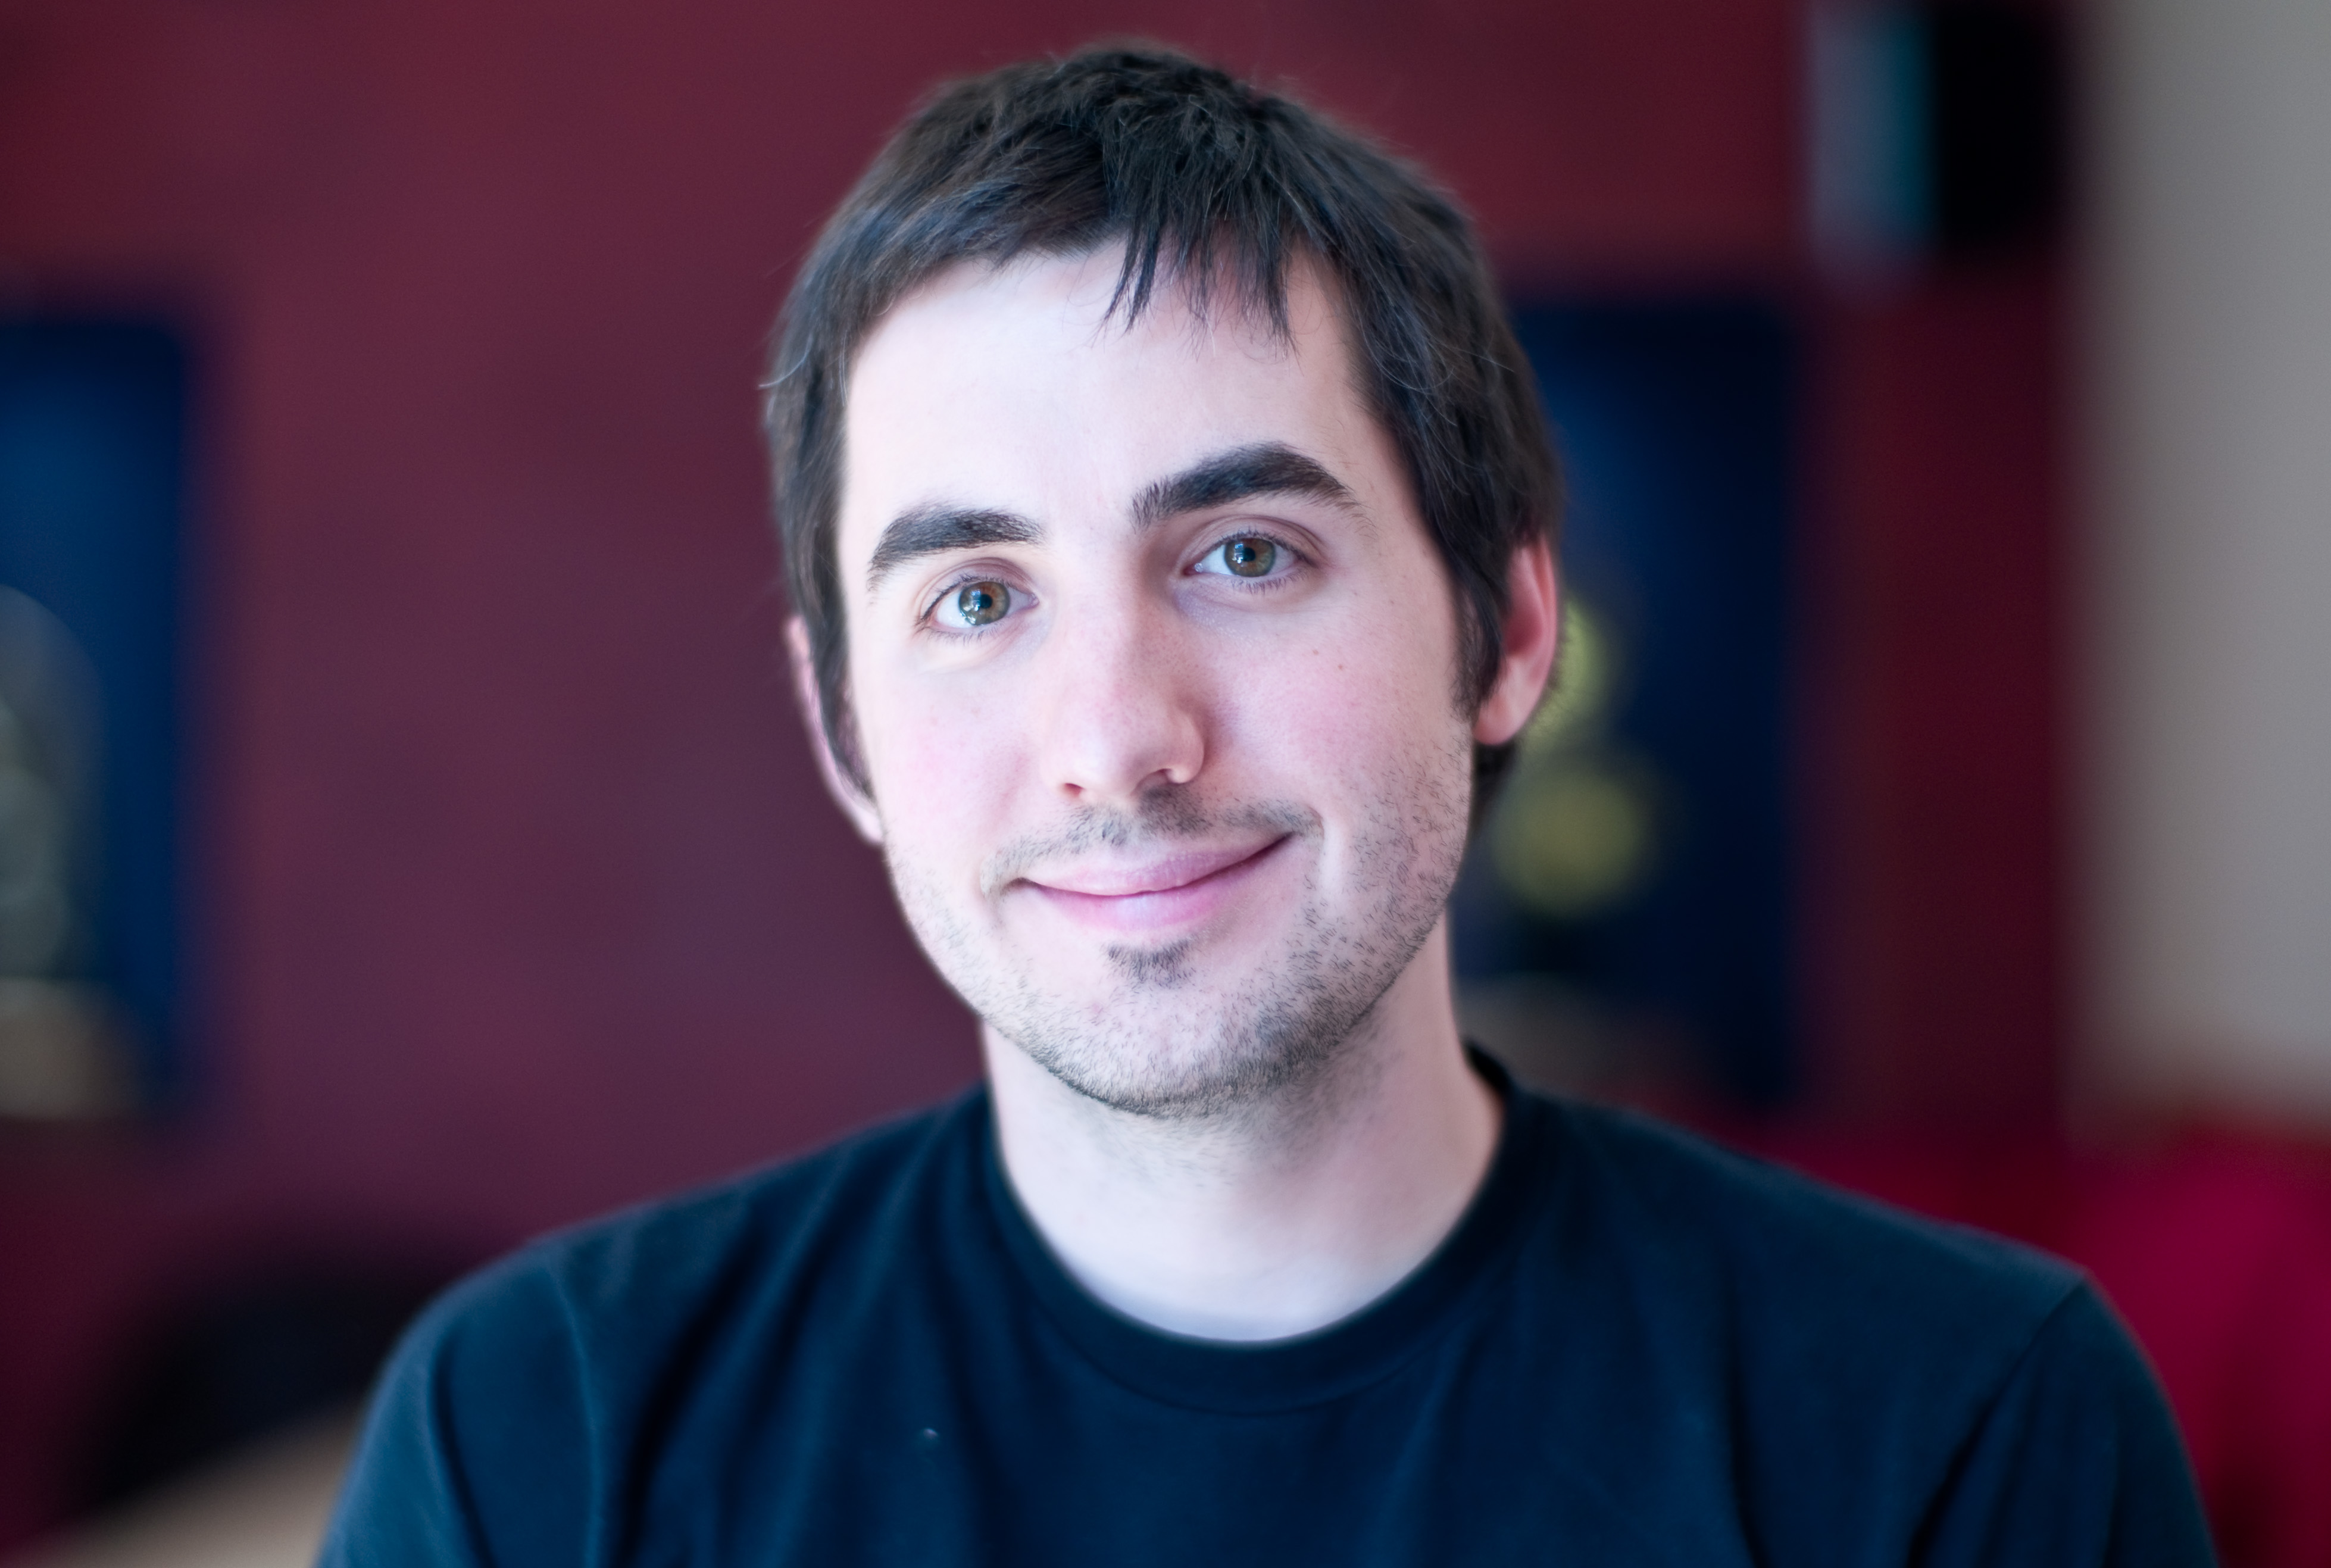 Here's Kevin Rose's Idea For A New Blogging Platform Called Tiny